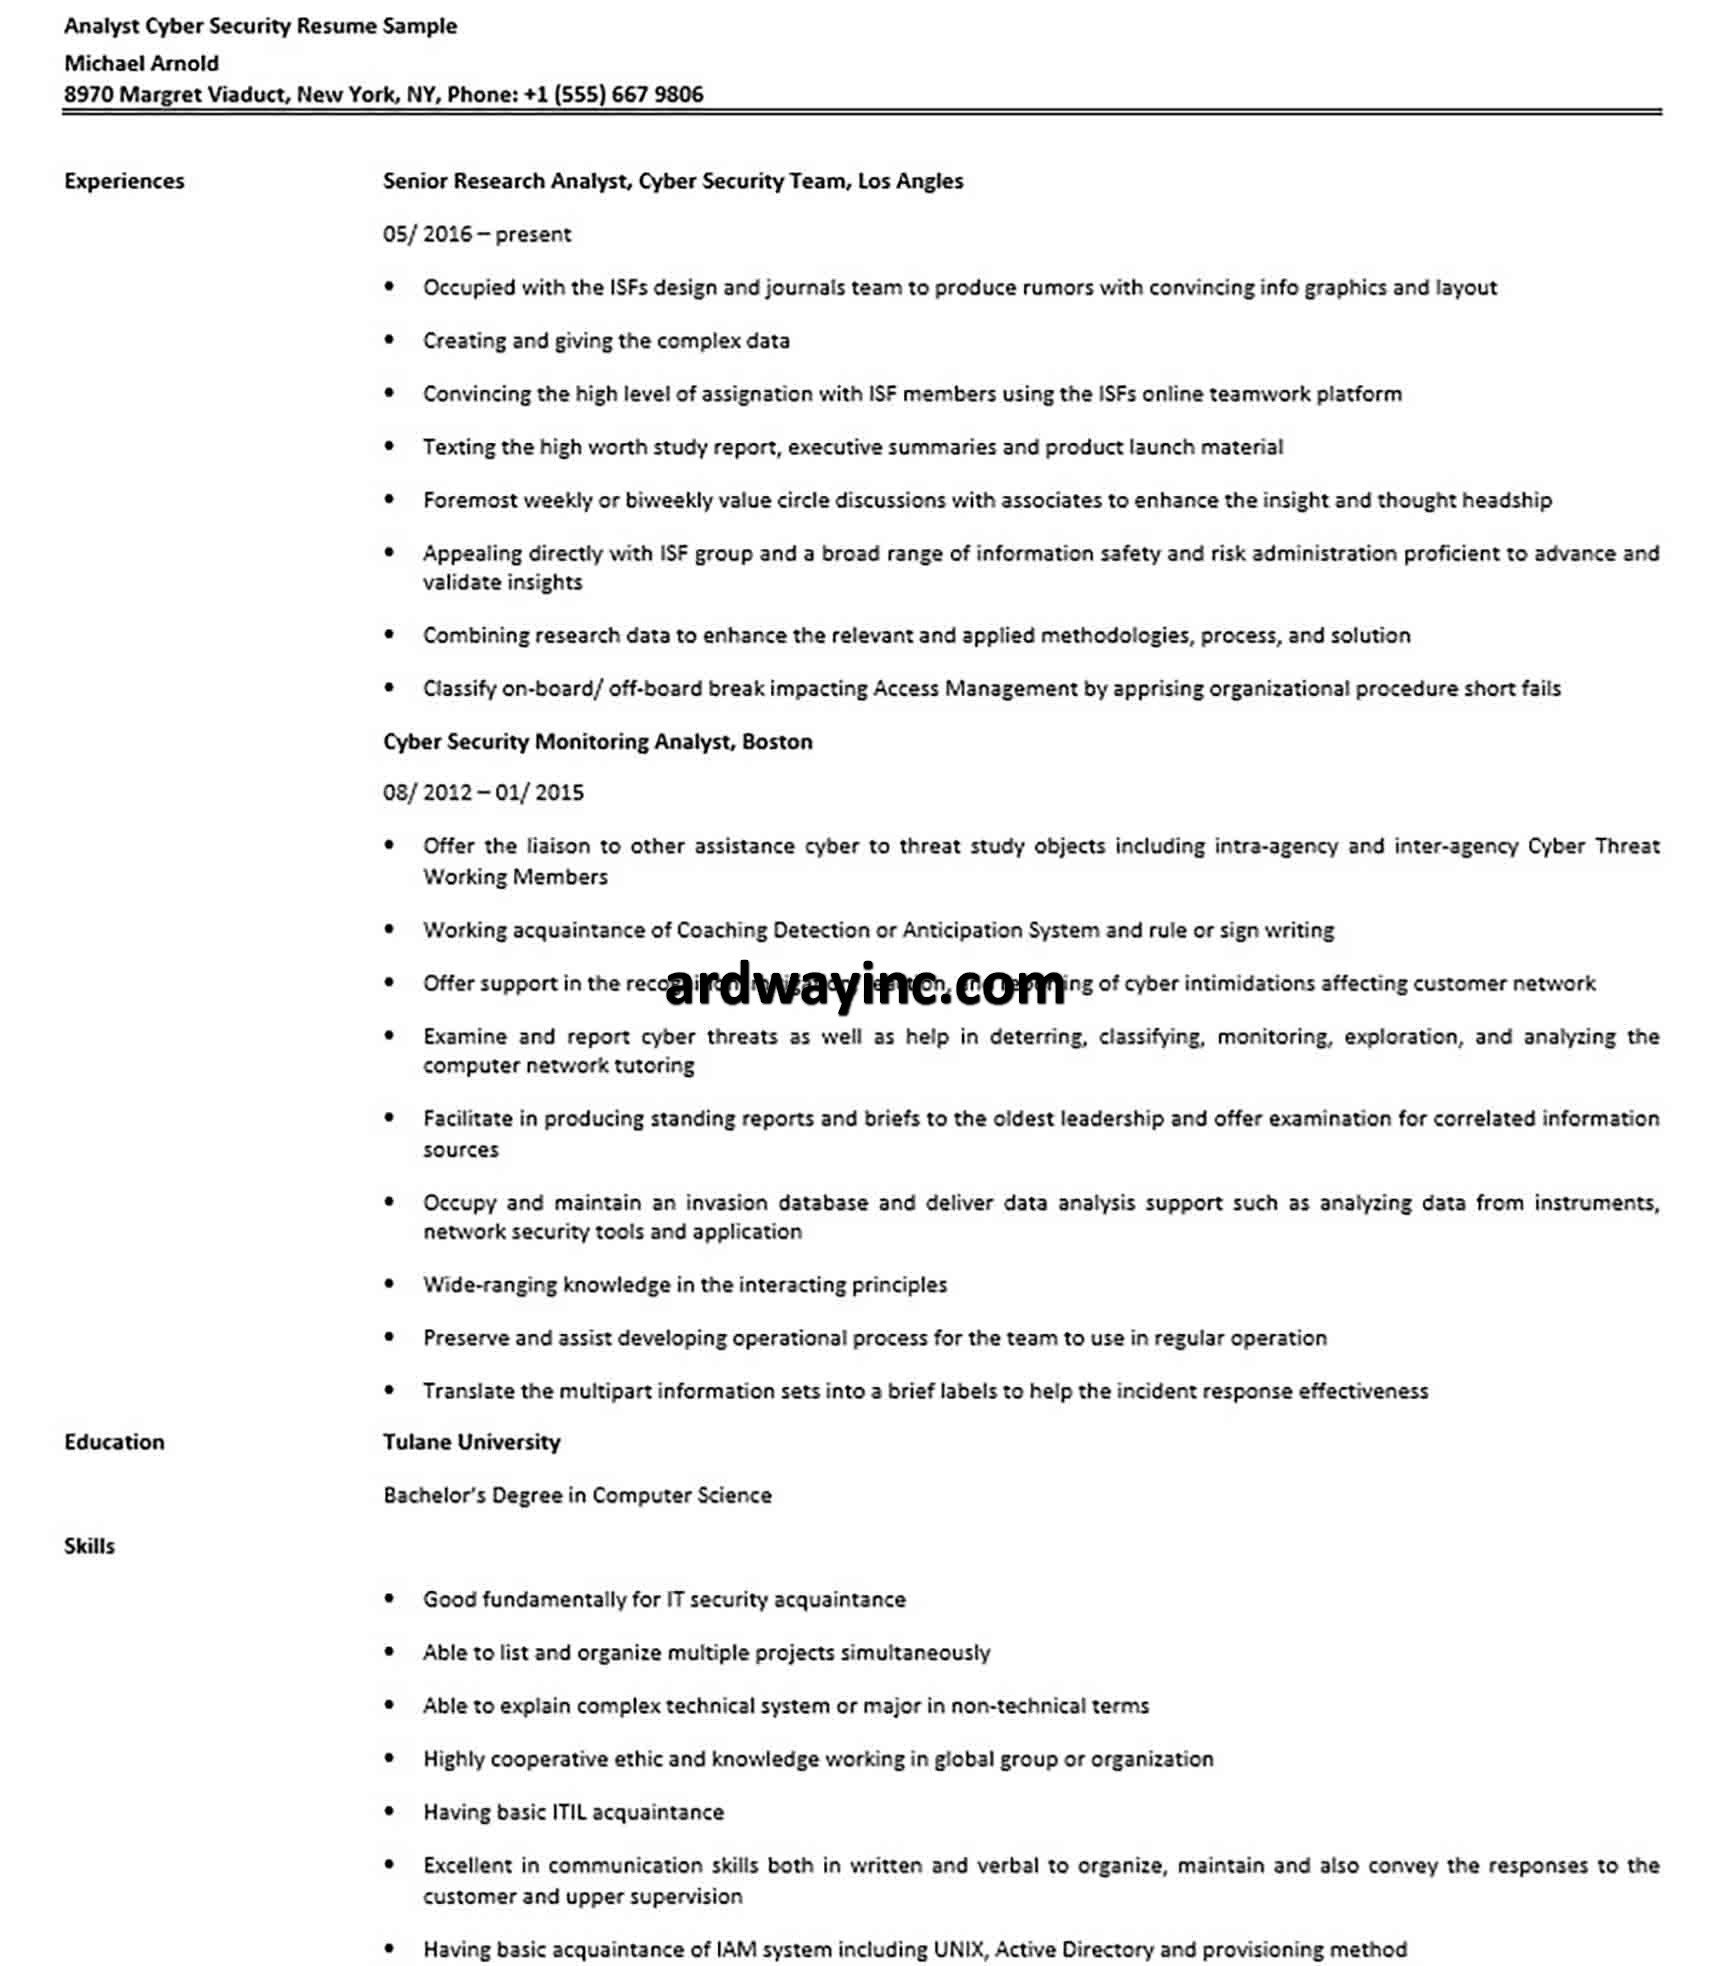 Analyst Cyber Security Resume Sample